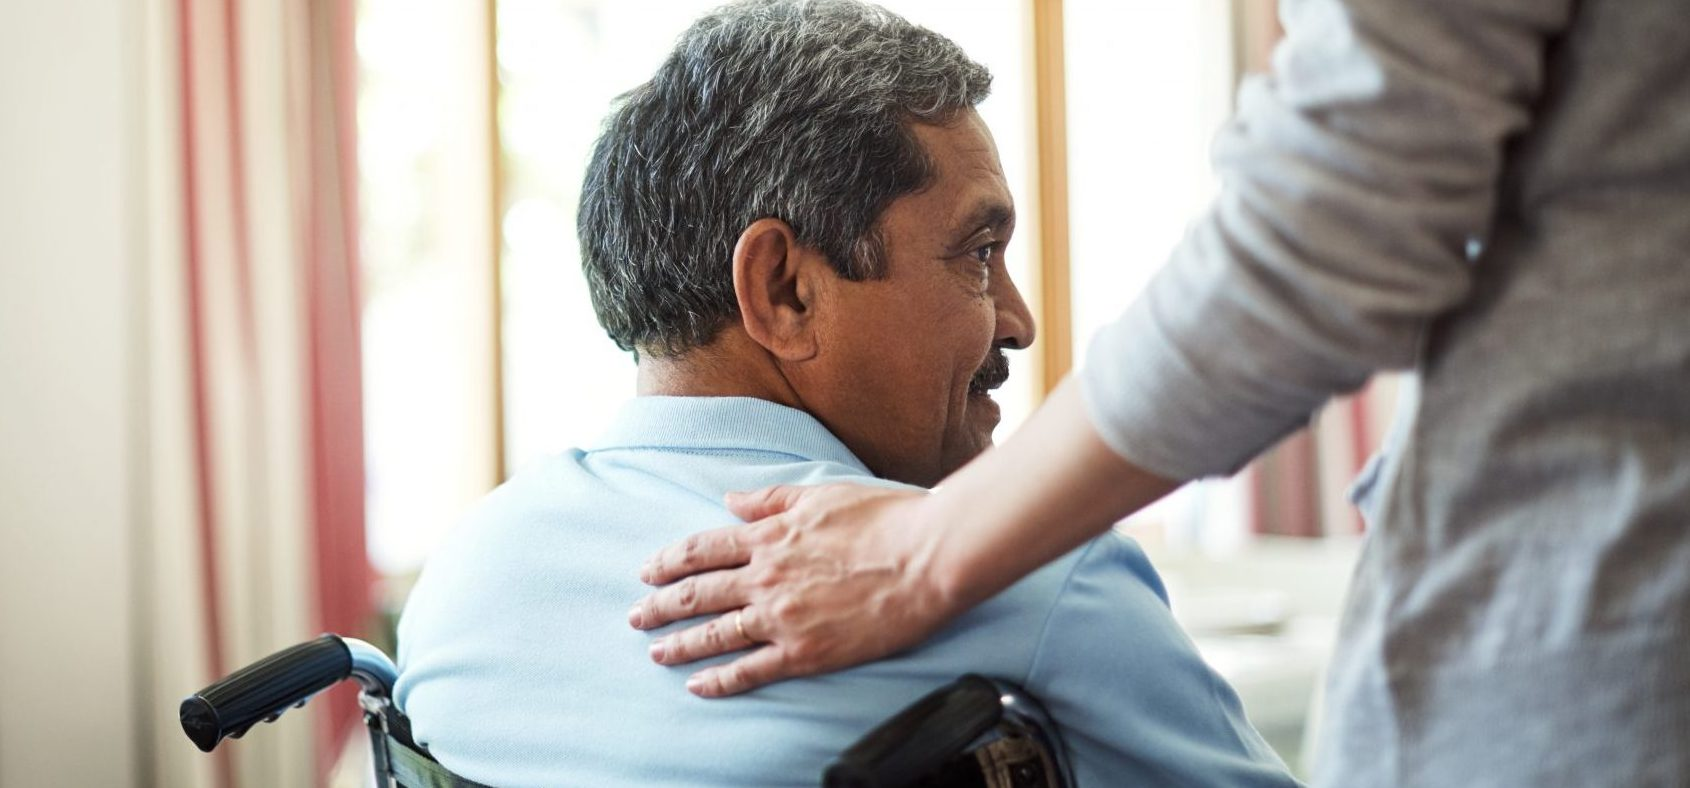 Man in a wheelchair with another person's comforting hand on his shoulder.